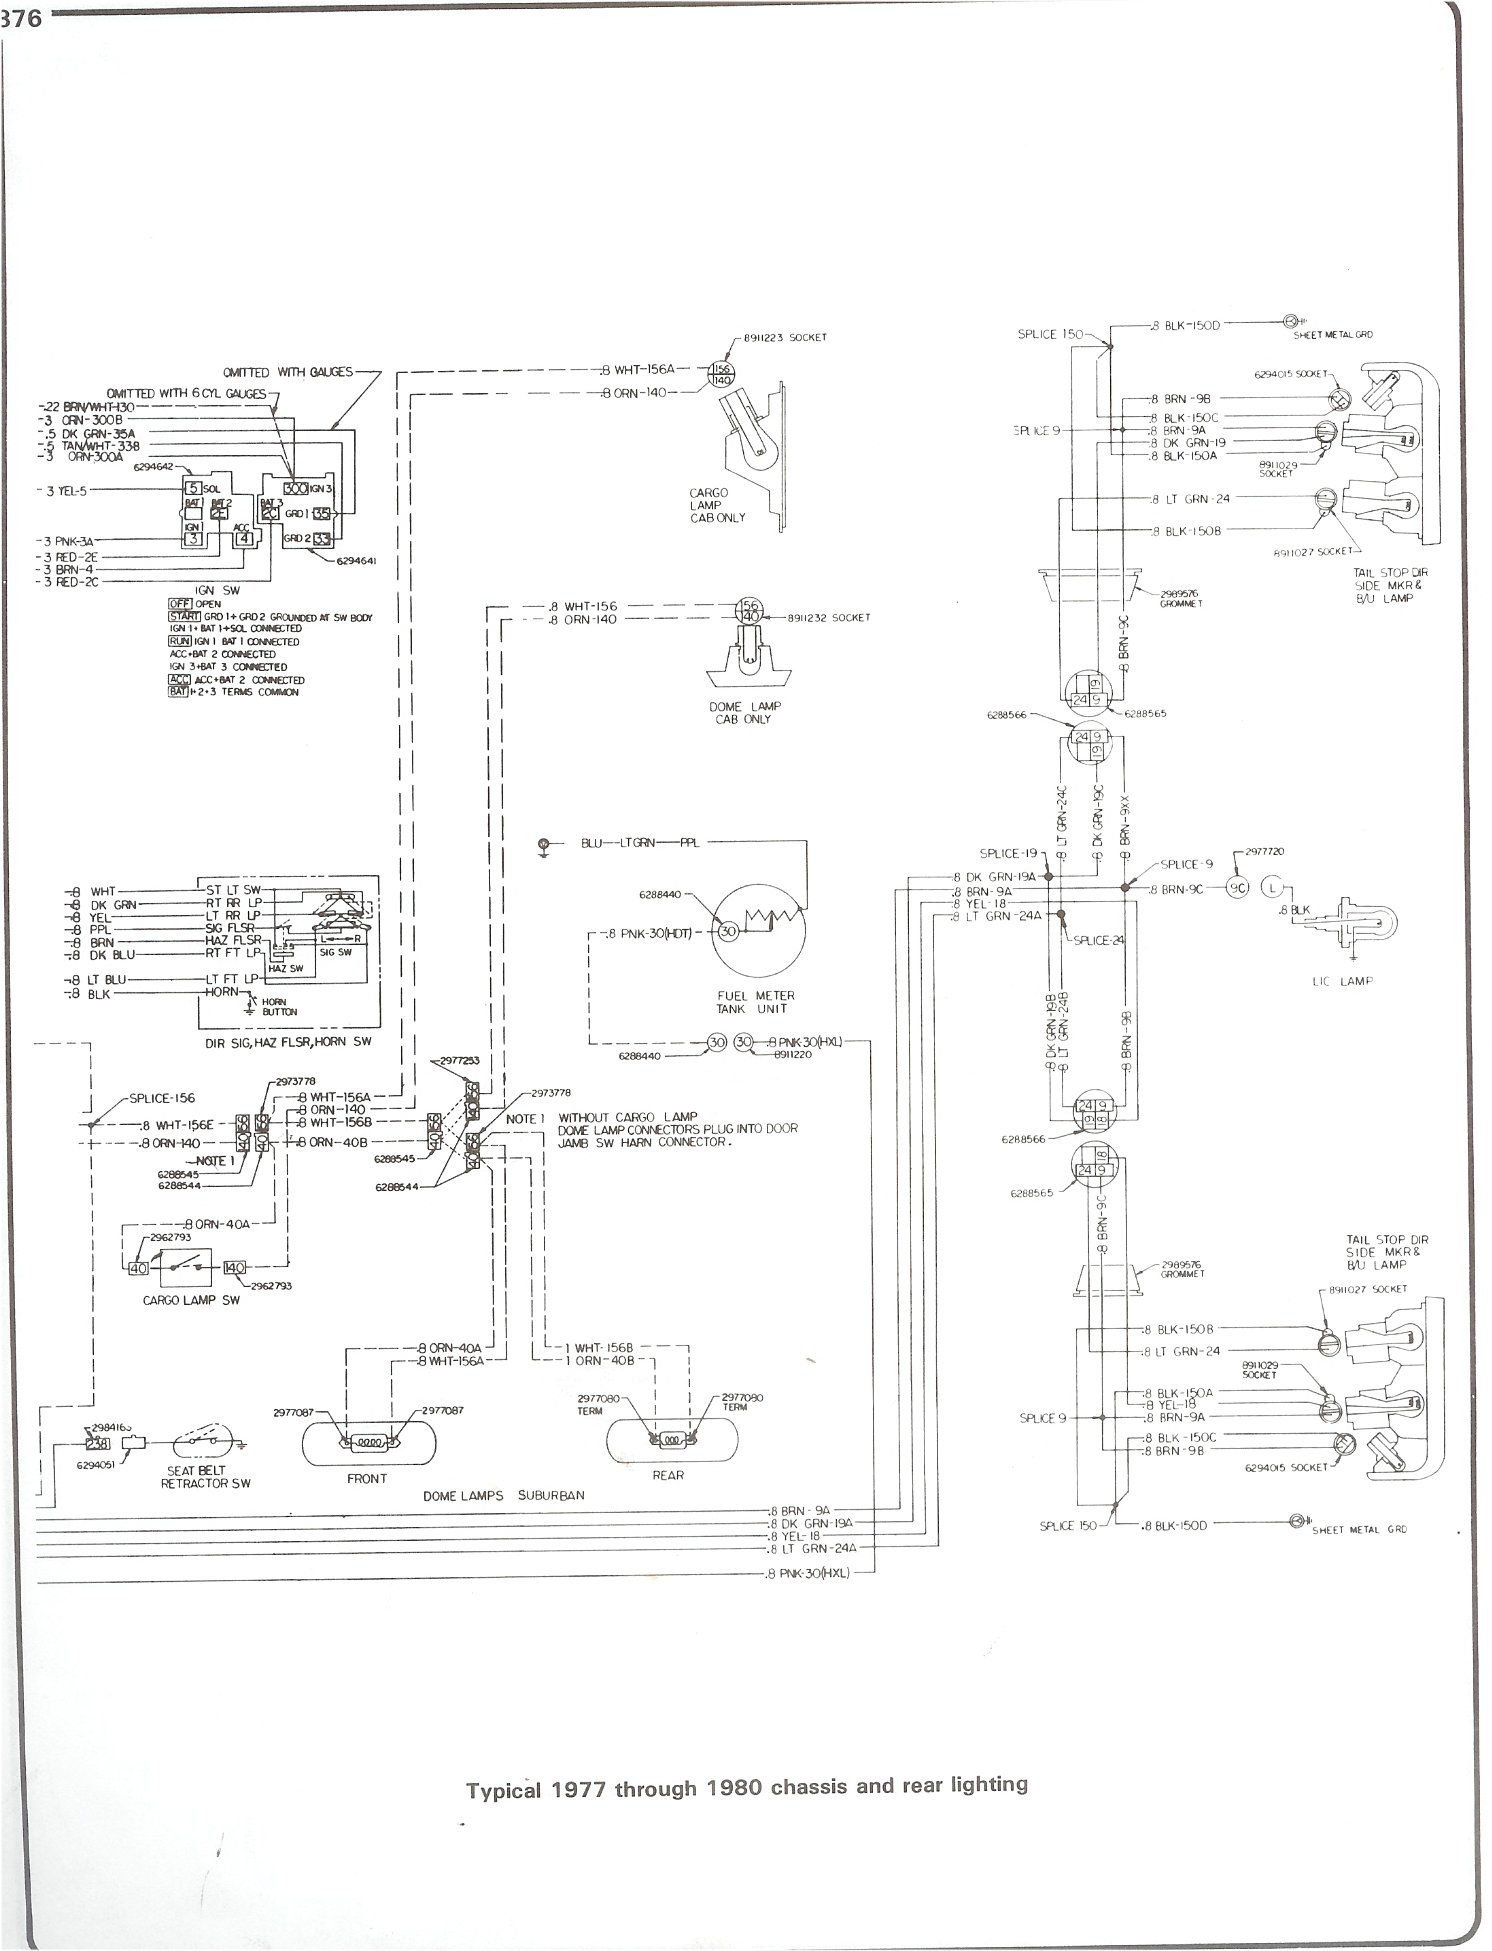 need help ignition switch wiring all the wiring diagrams are here forum 73 87chevytrucks com smforum index php topic 11766 0